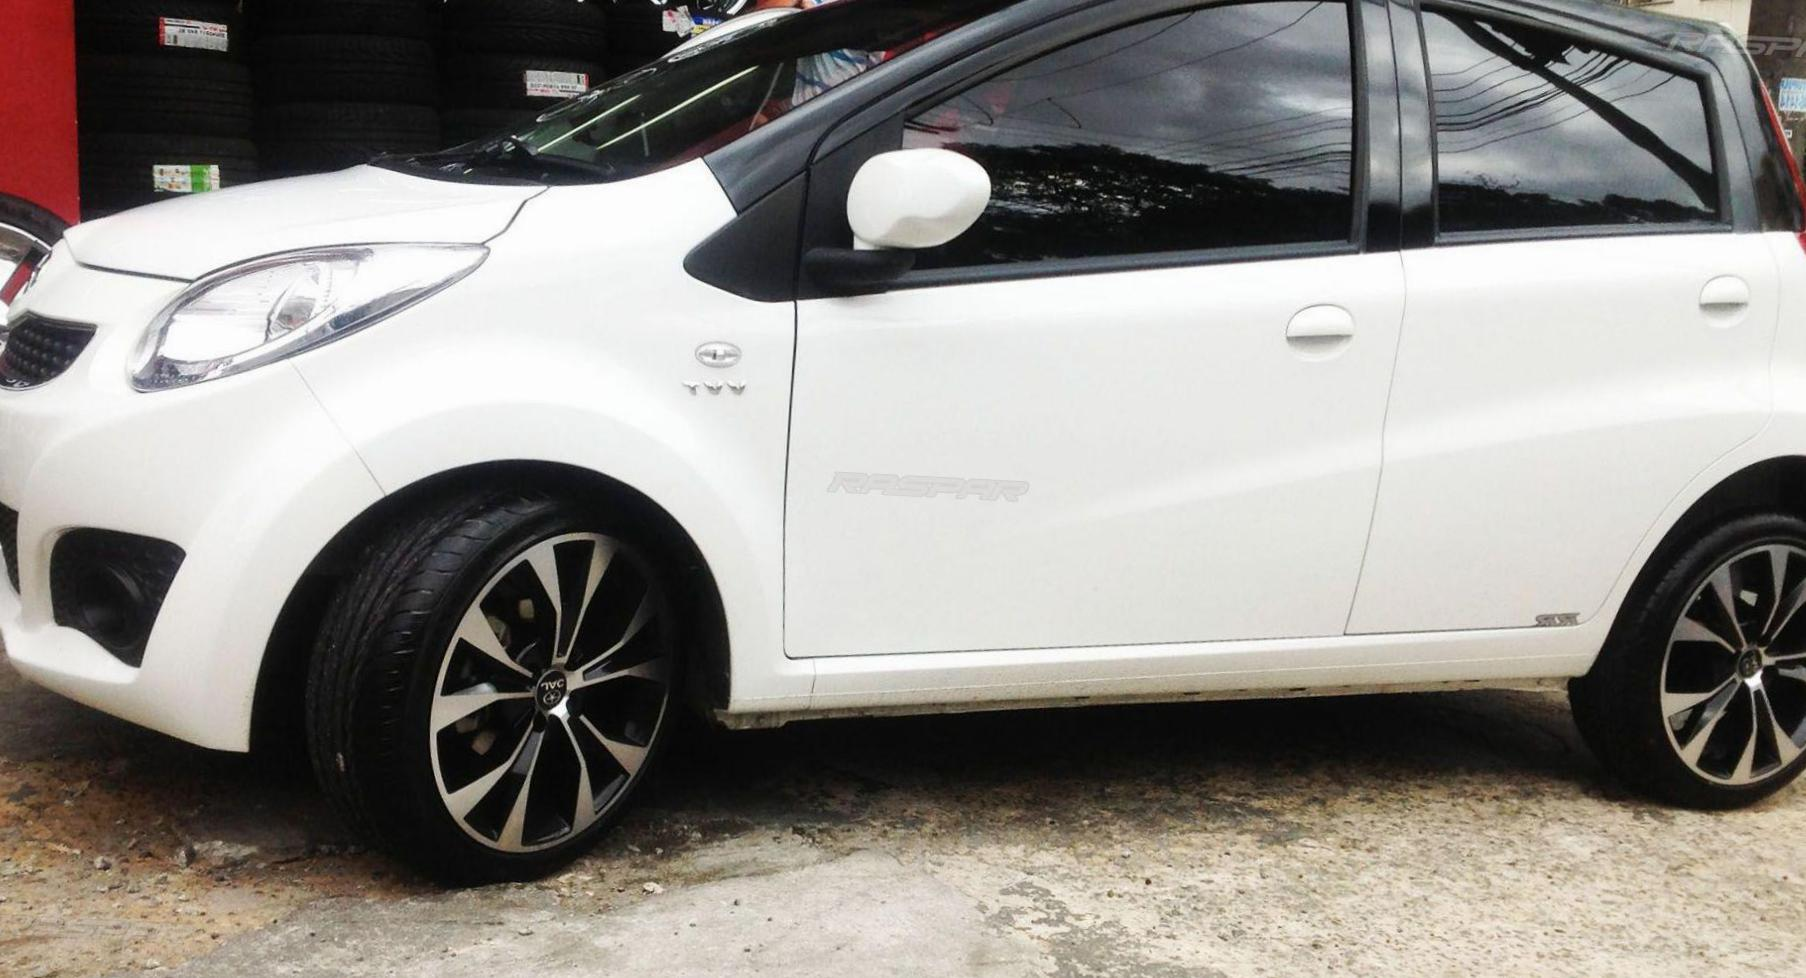 JAC J2 model hatchback